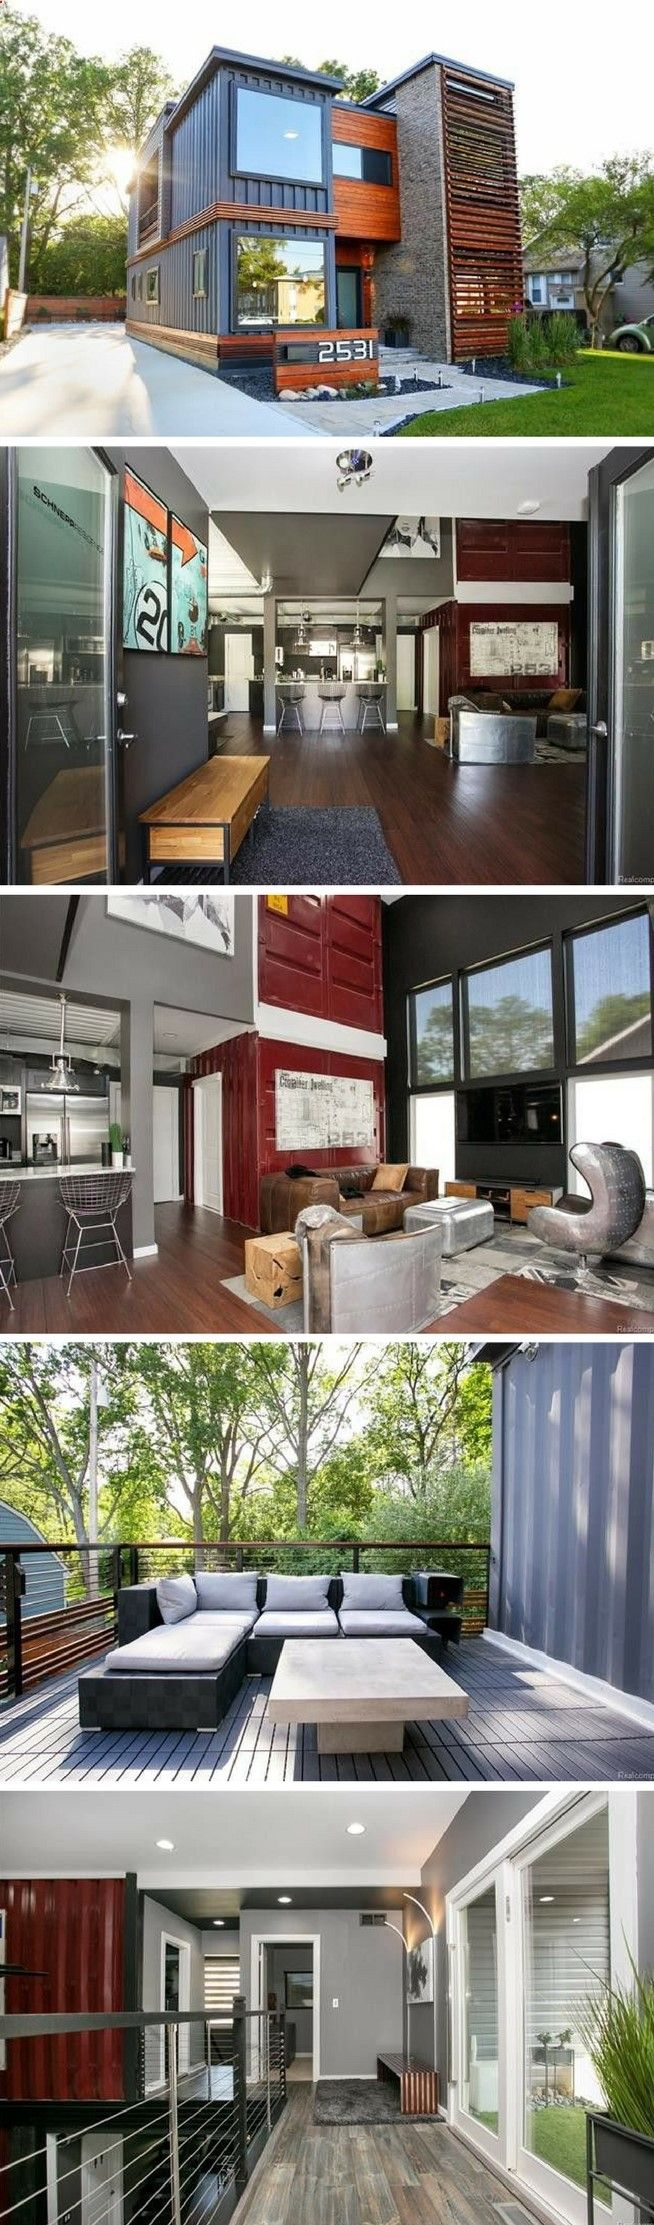 Container House - Container House - ROYAL OAK SHIPPING CONTAINER HOUSE Who Else Wants Simple Step-By-Step Plans To Design And Build A Container Home From Scratch? - Who Else Wants Simple Step-By-Step Plans To Design And Build A Container Home From Scratch?